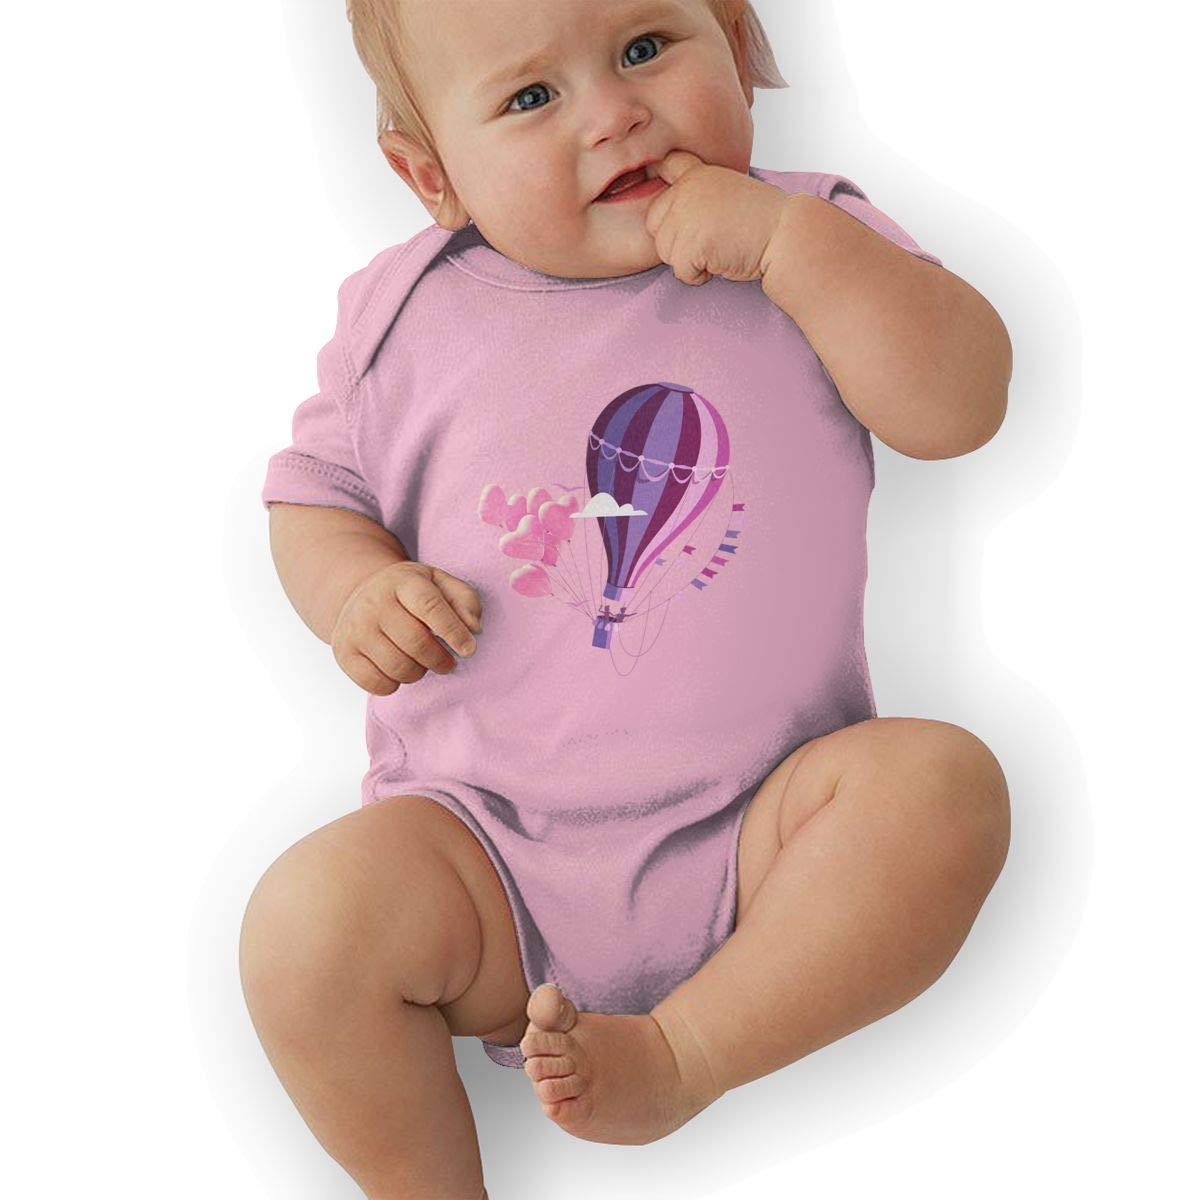 Newborn Baby Girls Bodysuit Short-Sleeve Onesie Hot Air Balloon Print Jumpsuit Autumn Pajamas